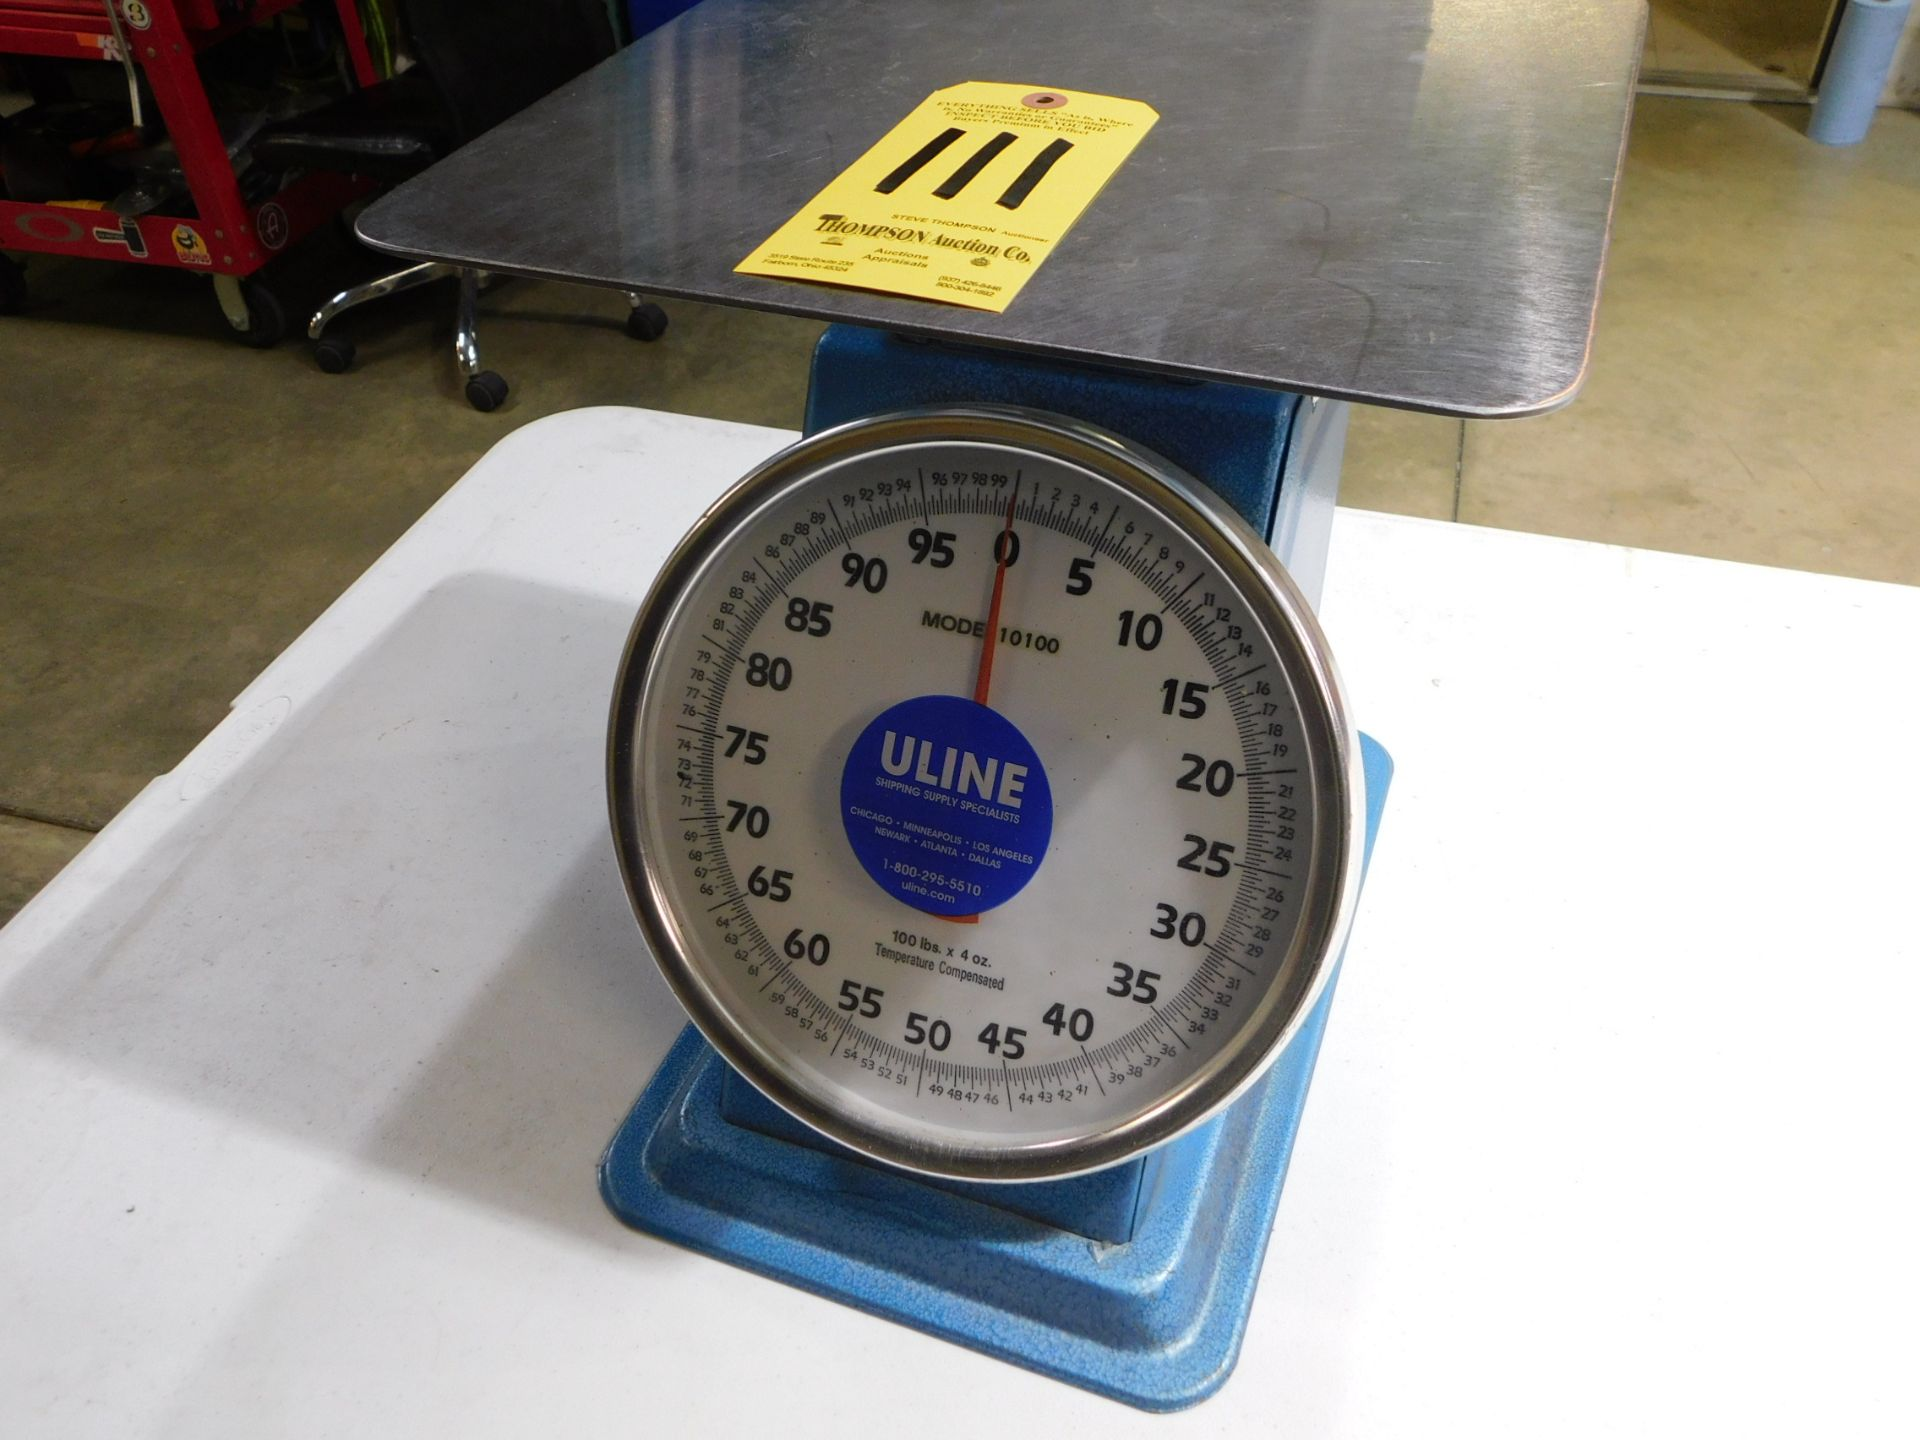 Lot 111 - U-Line Model 101000 Scale, 100 lb. Cap, Lot Location 3204 Olympia Dr. A, Lafayette, IN 47909